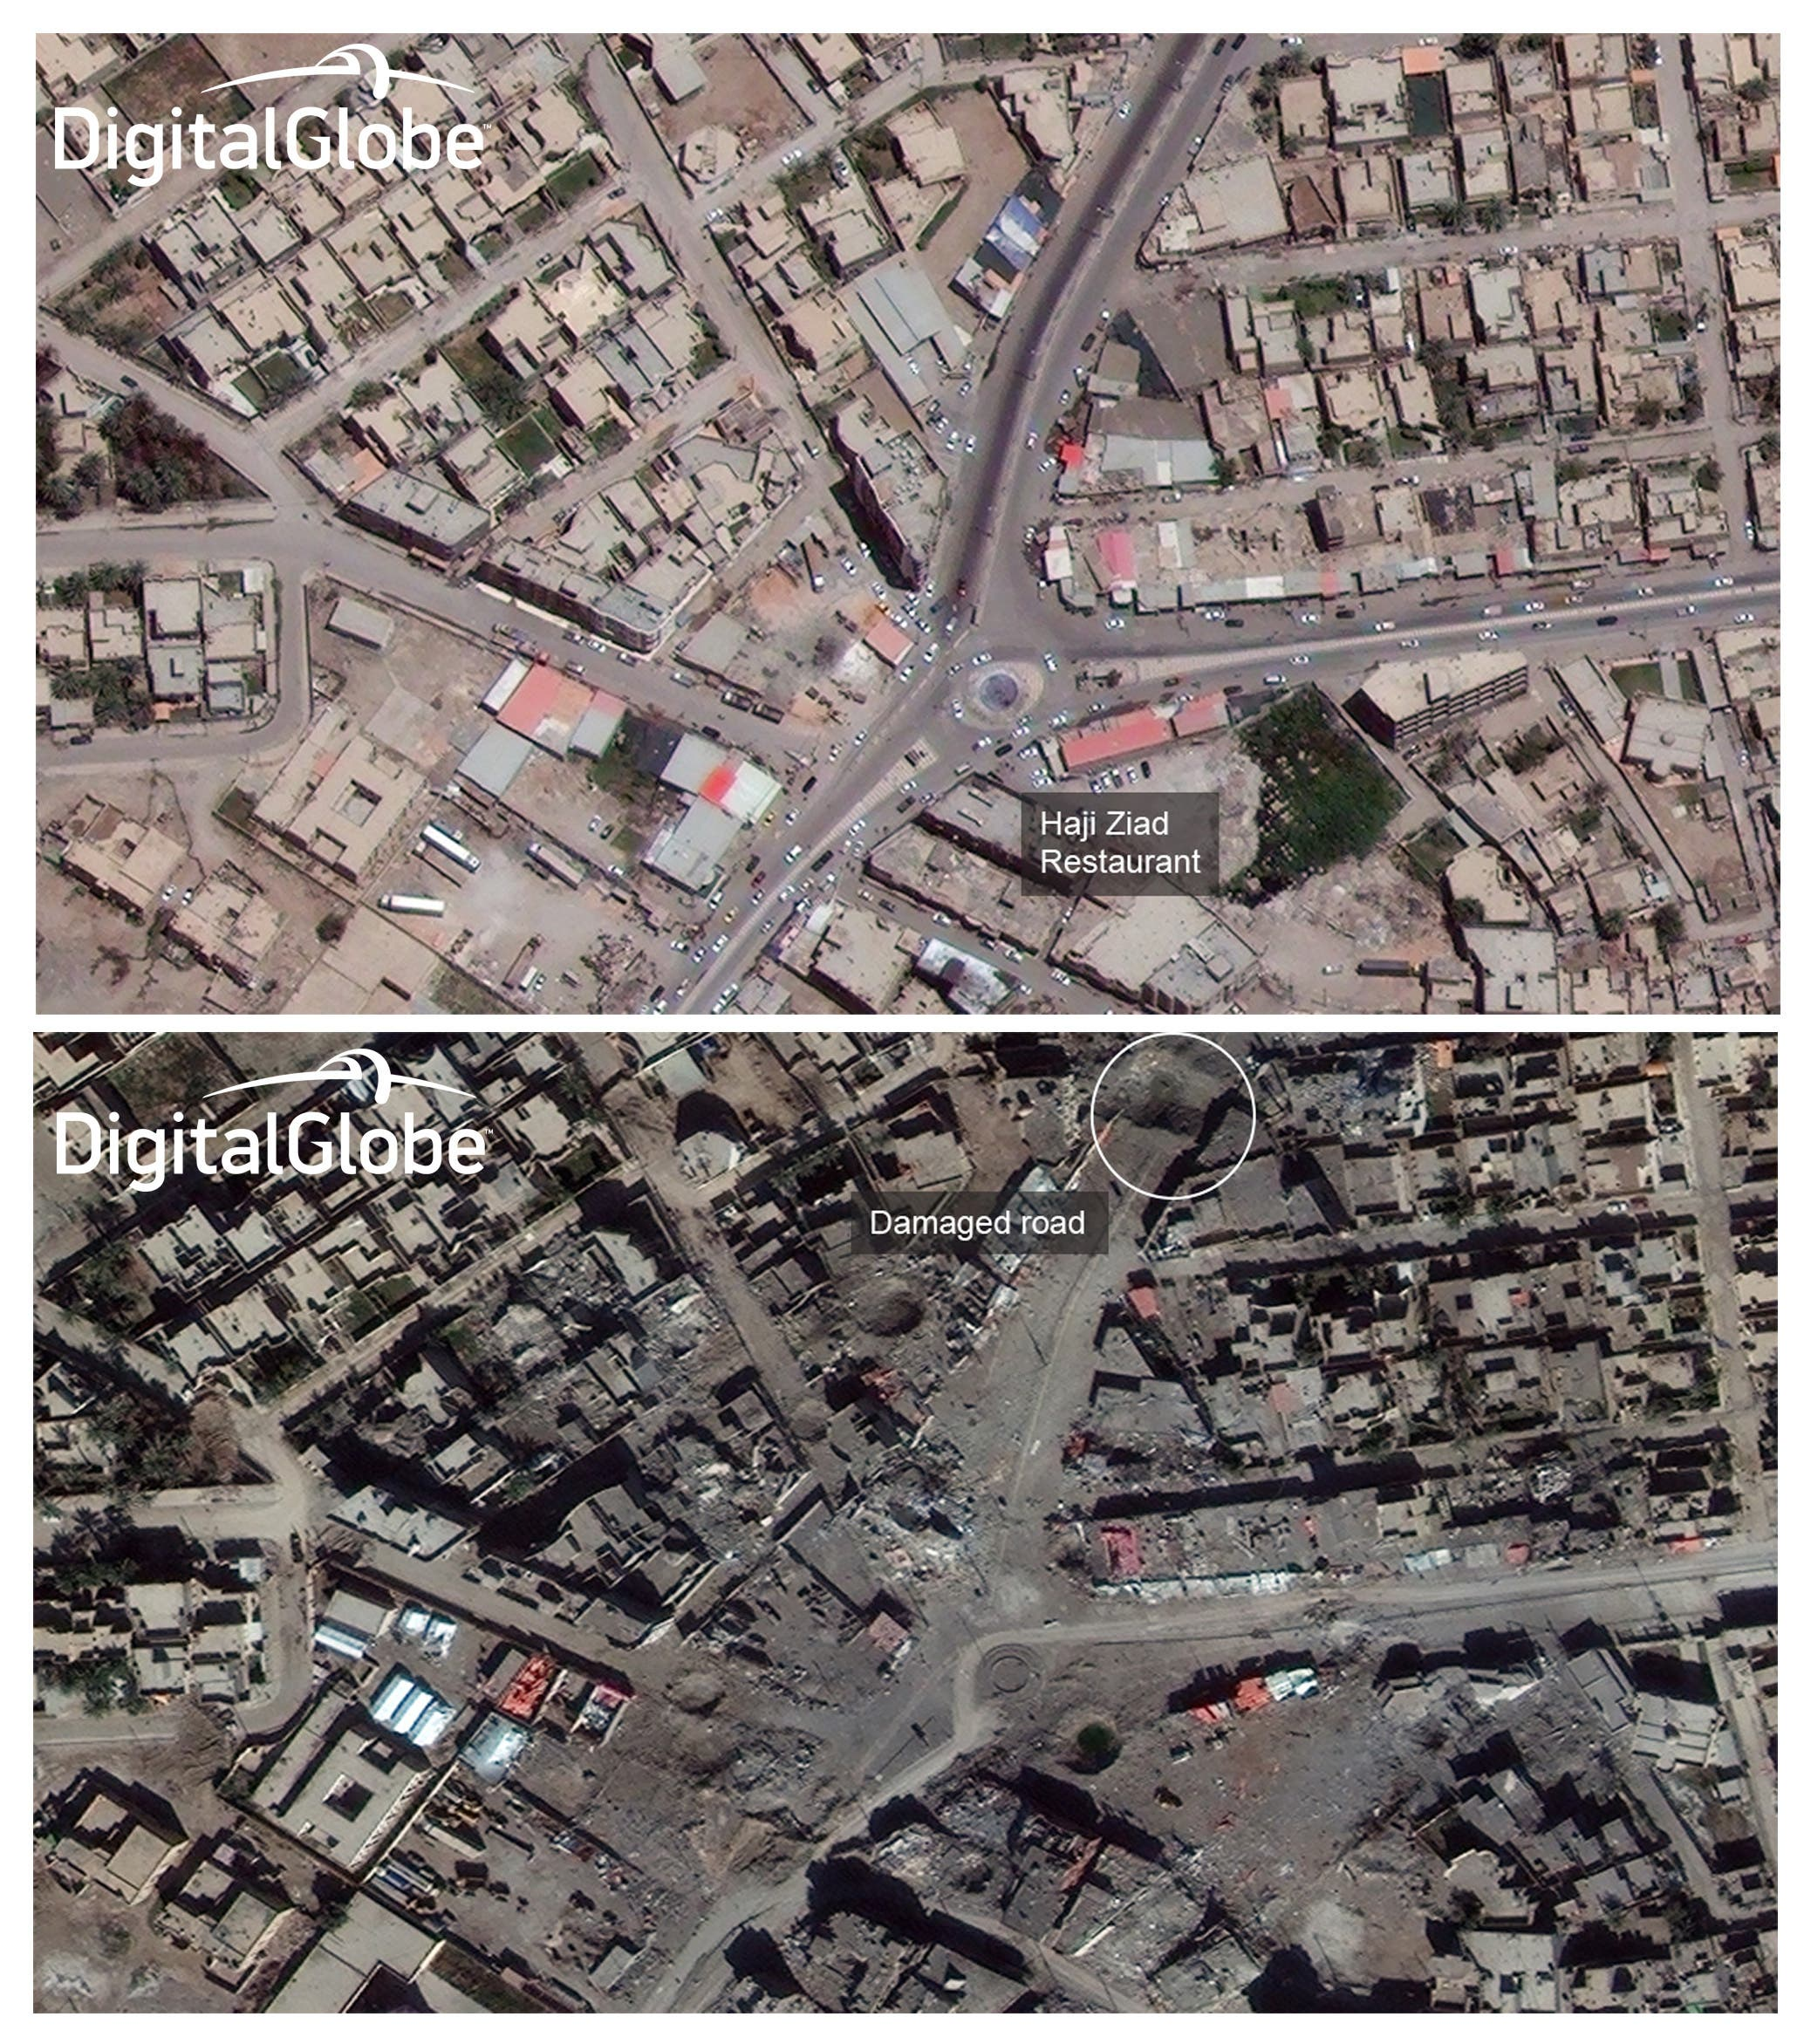 This combination of two satellite photos provided by DigitalGlobe shows Haji Ziad Square in Ramadi, Iraq, in 2014 before the city fell to Islamic State militants, top, and on Jan. 29, 2016, after coalition airstrikes and heavy fighting to re-capture the city. In the once thriving square, not a single structure still stands. Haji Ziad Restaurant, a landmark on the south side of the square beloved for years by Ramadi residents for its grilled meats, has been flattened. The restaurant was so popular its owner built a larger fancier branch across the street three years ago, and that too has been destroyed. (DigitalGlobe via AP)